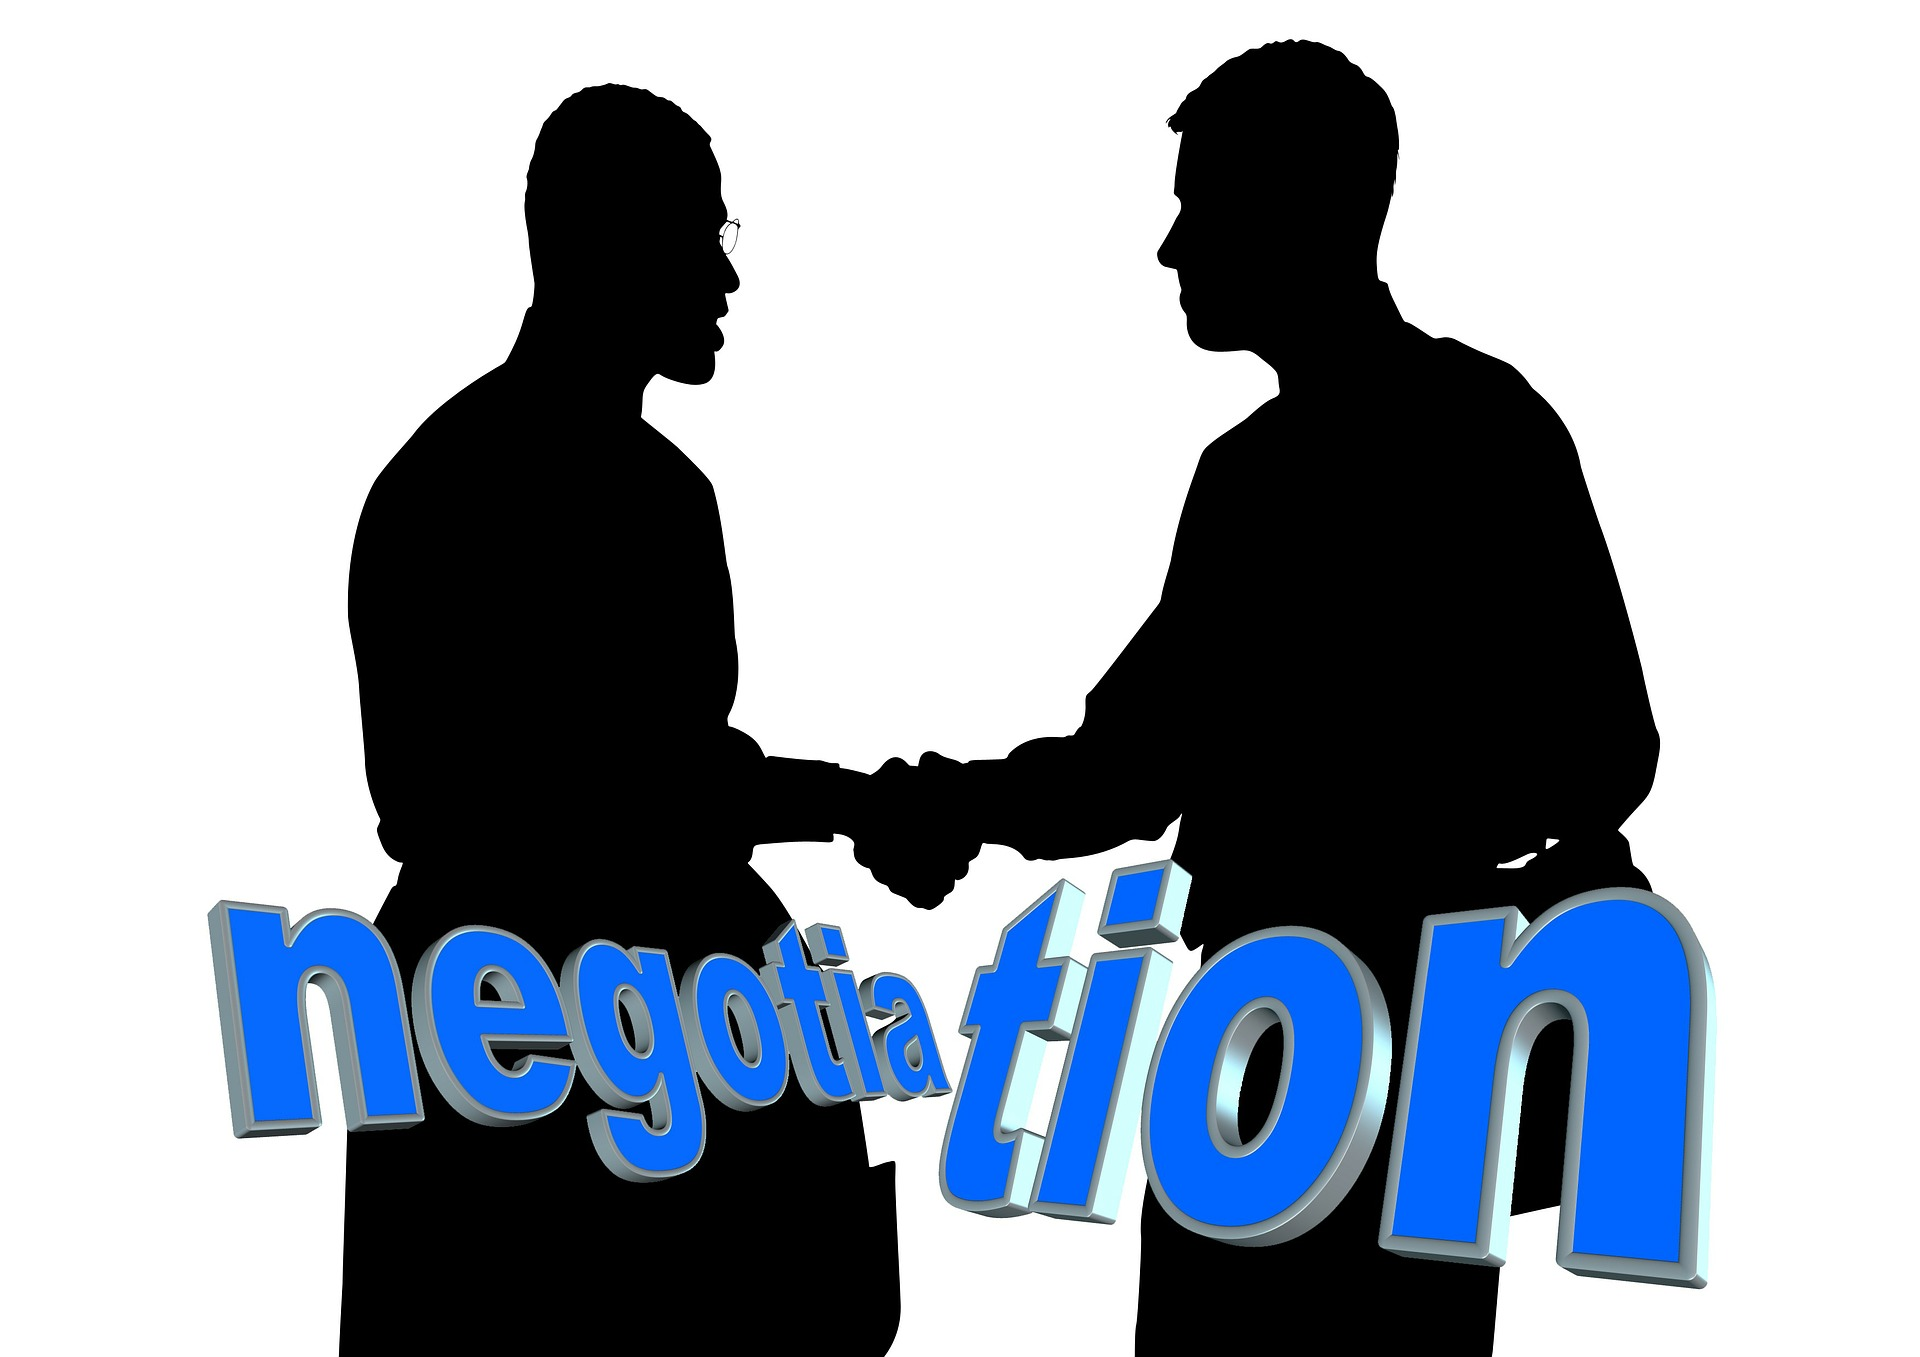 essays on negotiation Negotiation number: introduction that negotiations have become a central part in conflict resolution is a matter that cannot be gainsaid the multipronged benefits.